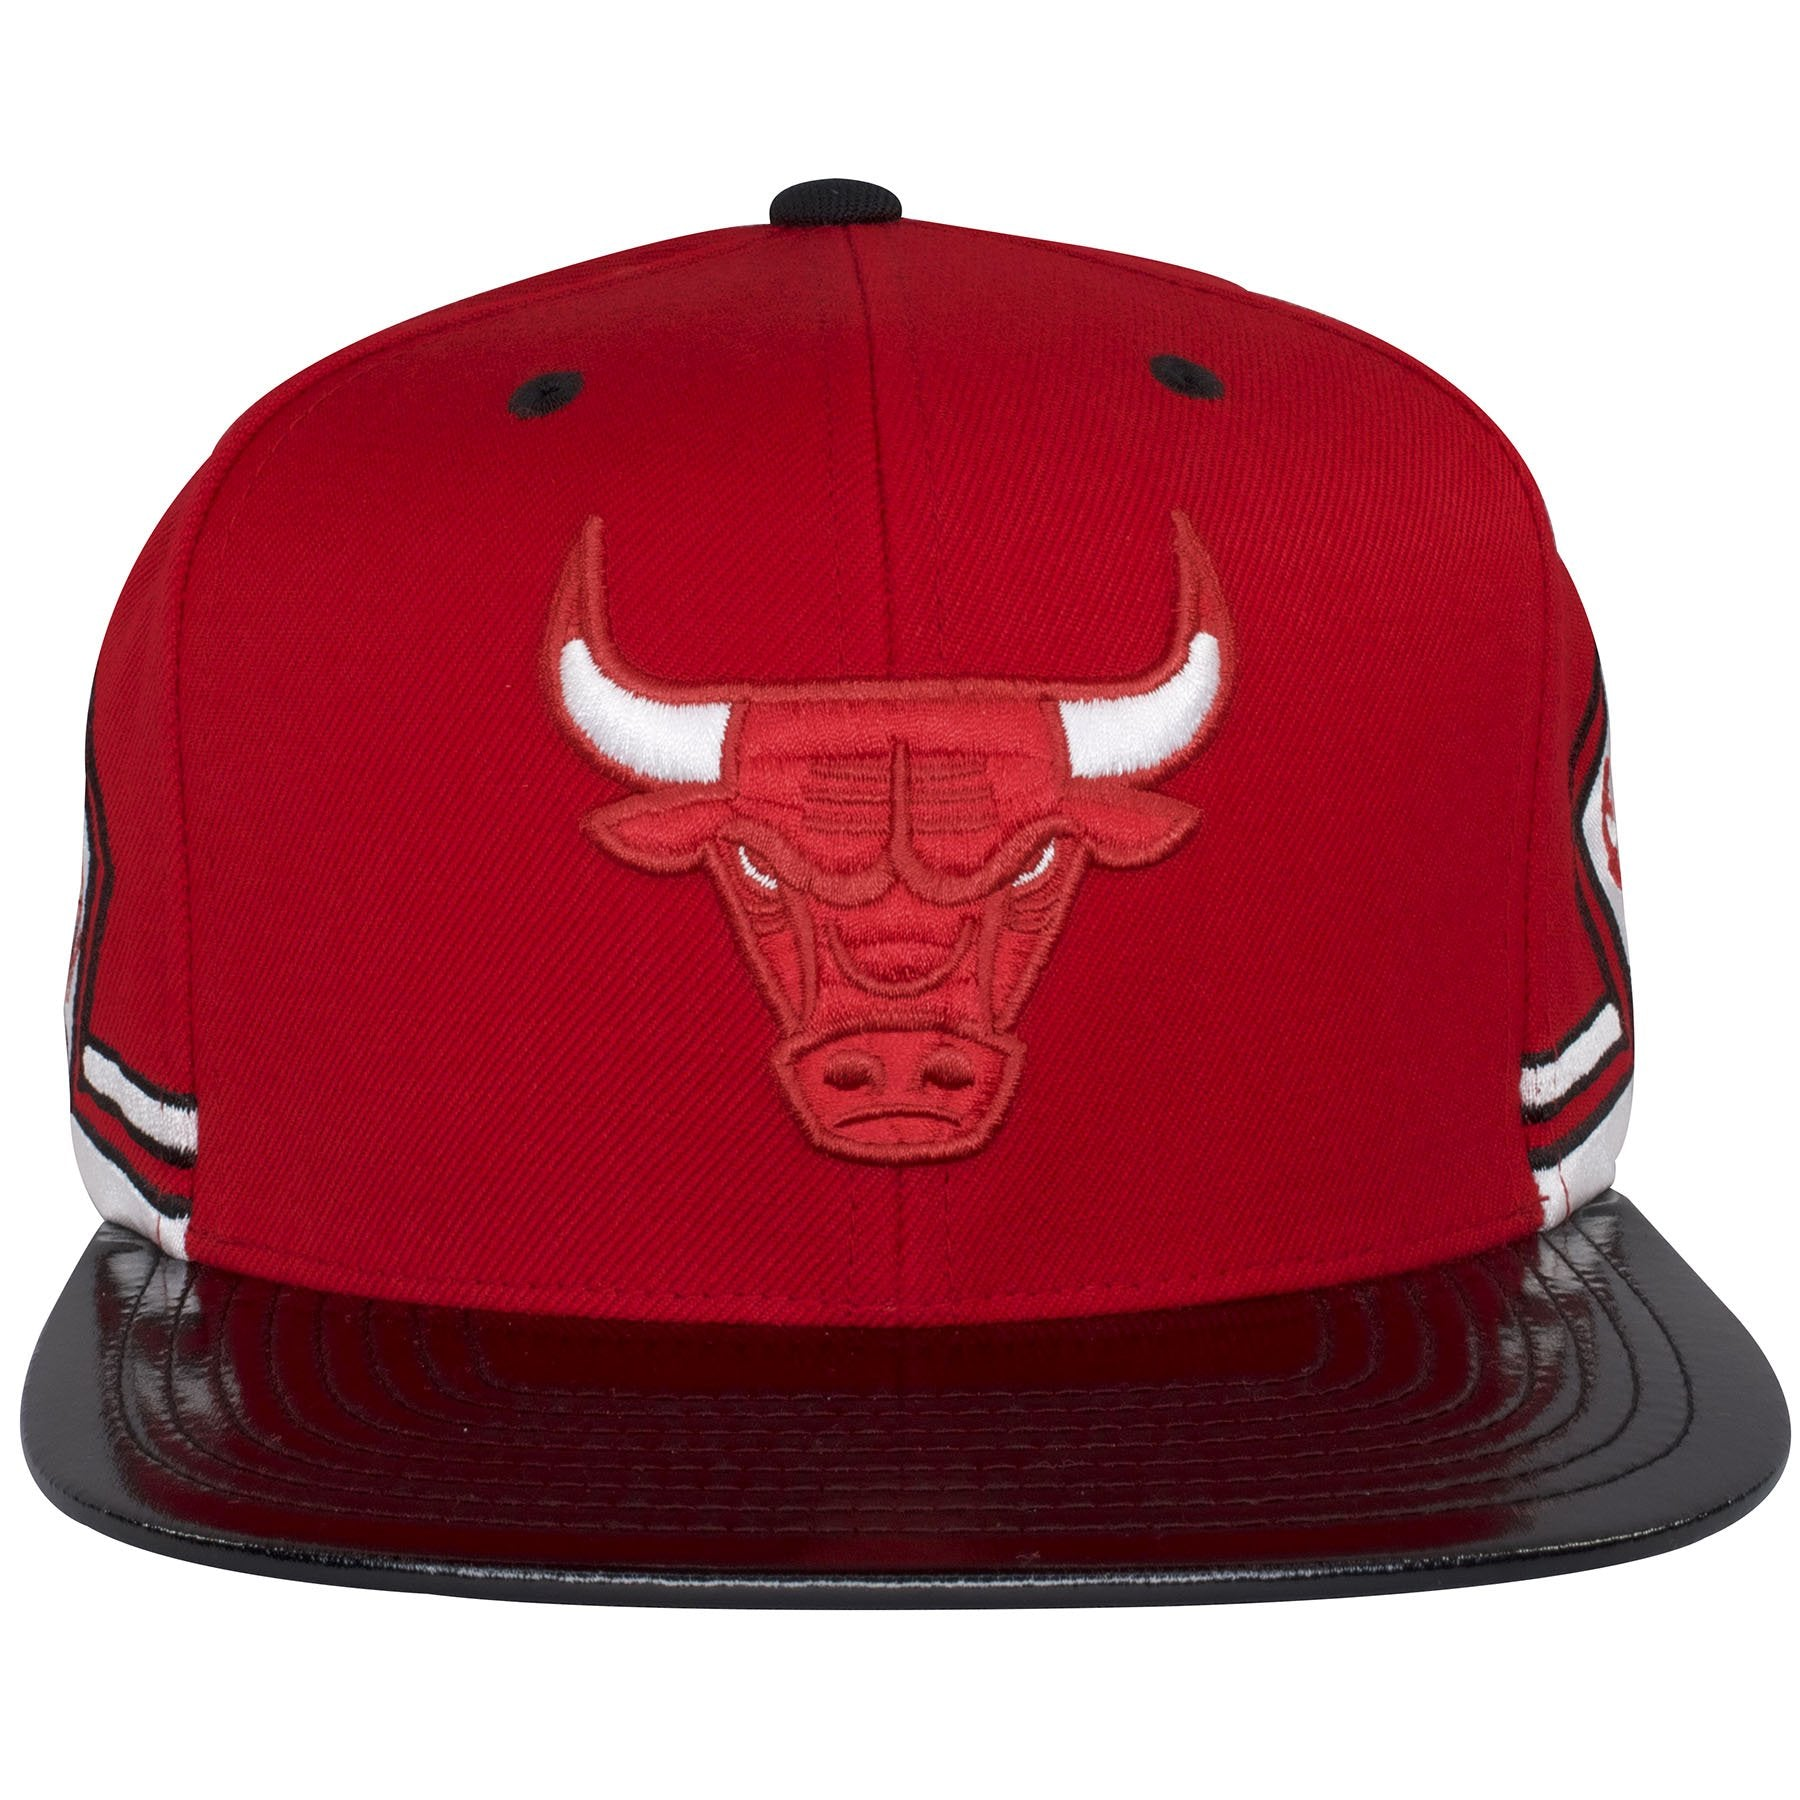 The flat bill of this Chicago Bulls red snapback is made with a black  patent leather 90c7f5d4f67